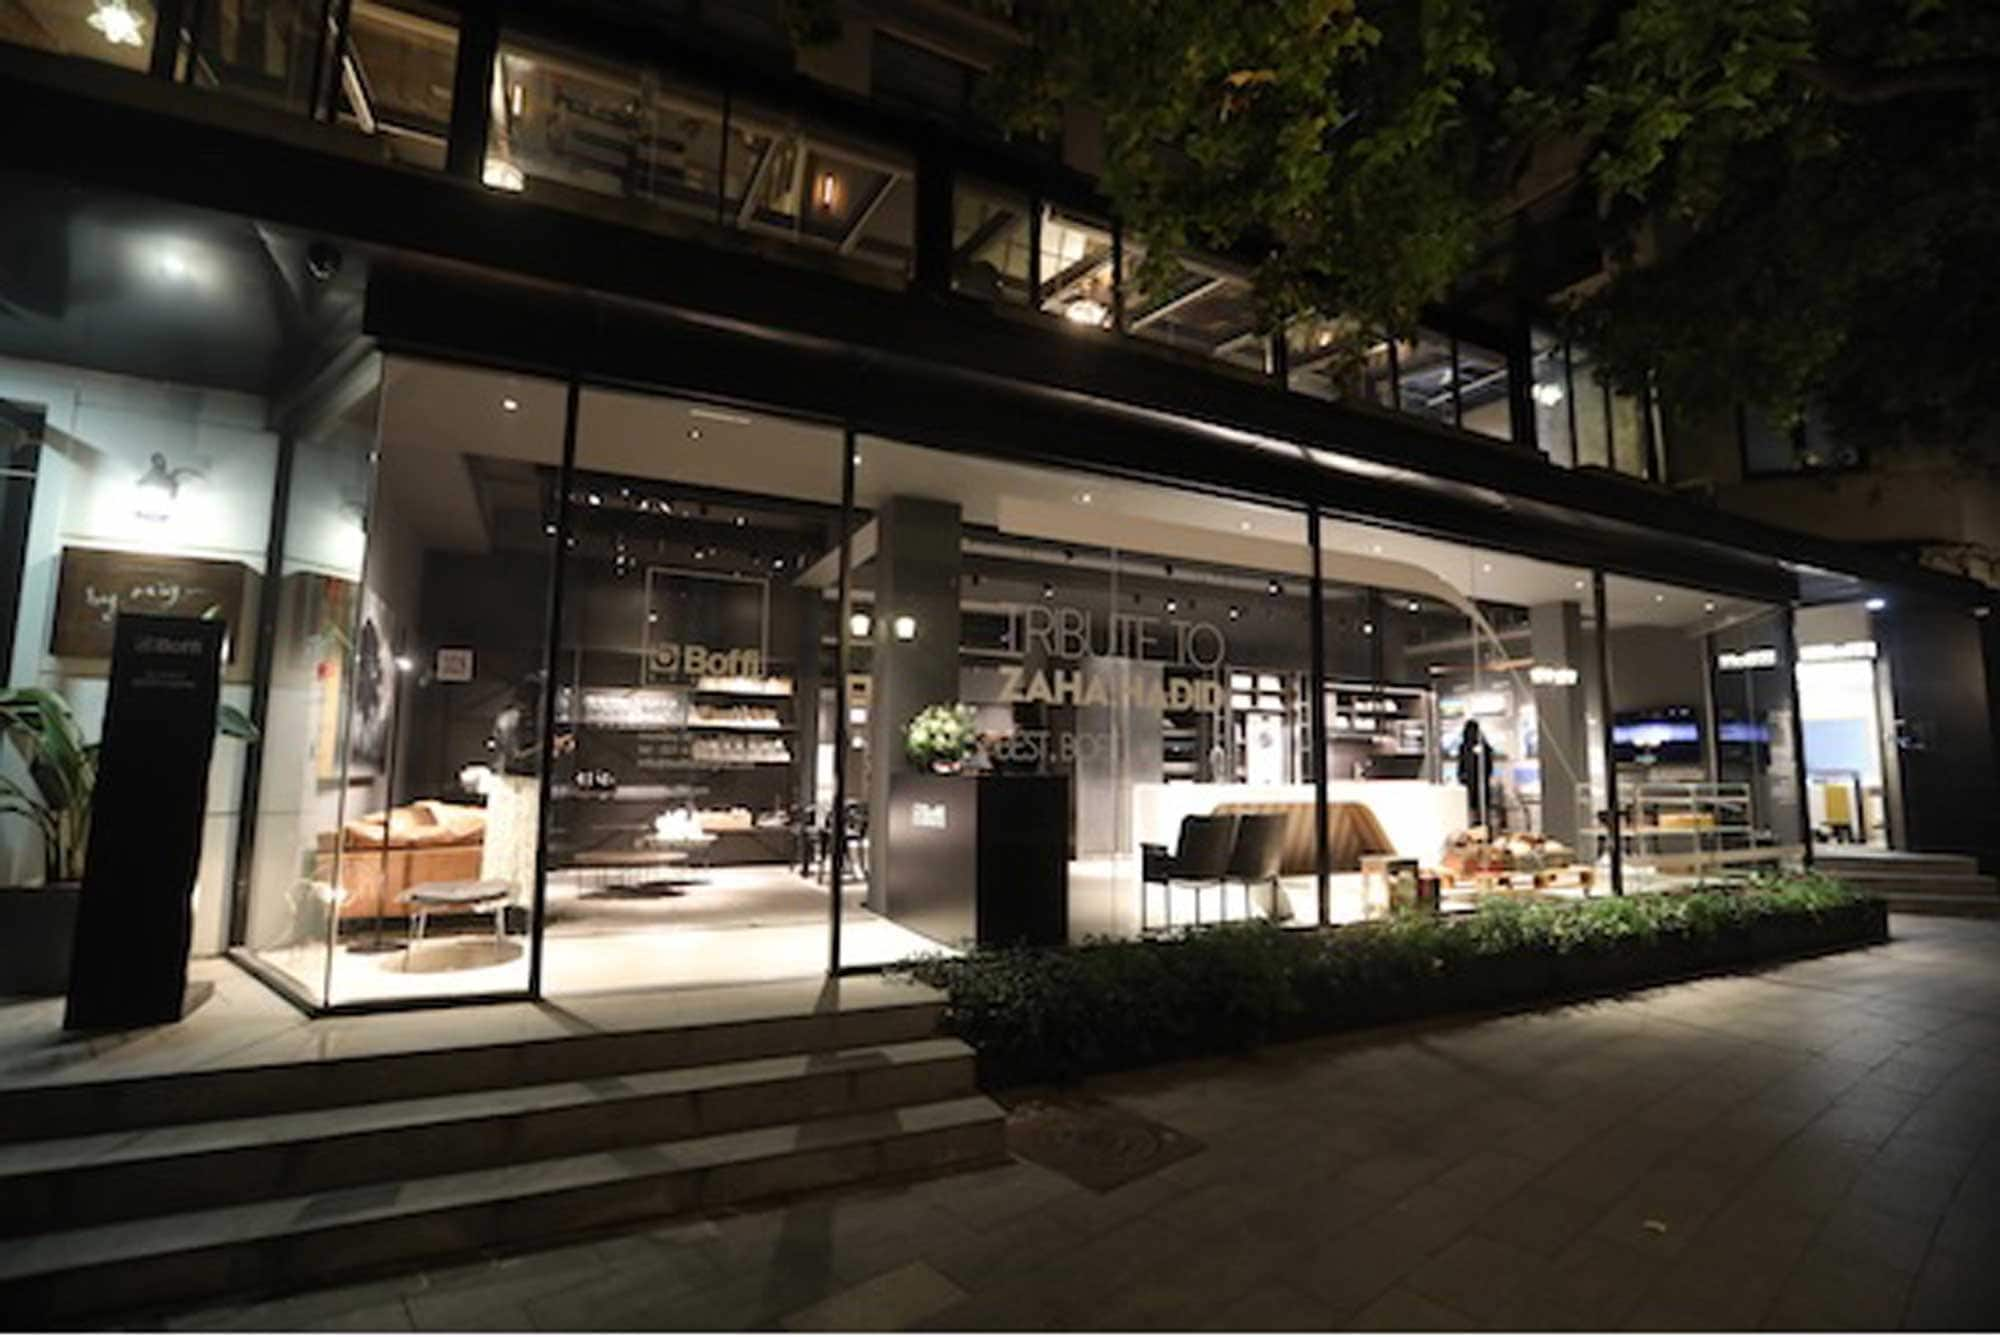 New Opening Boffi Studio Shanghai, with De Padova and Boffi.